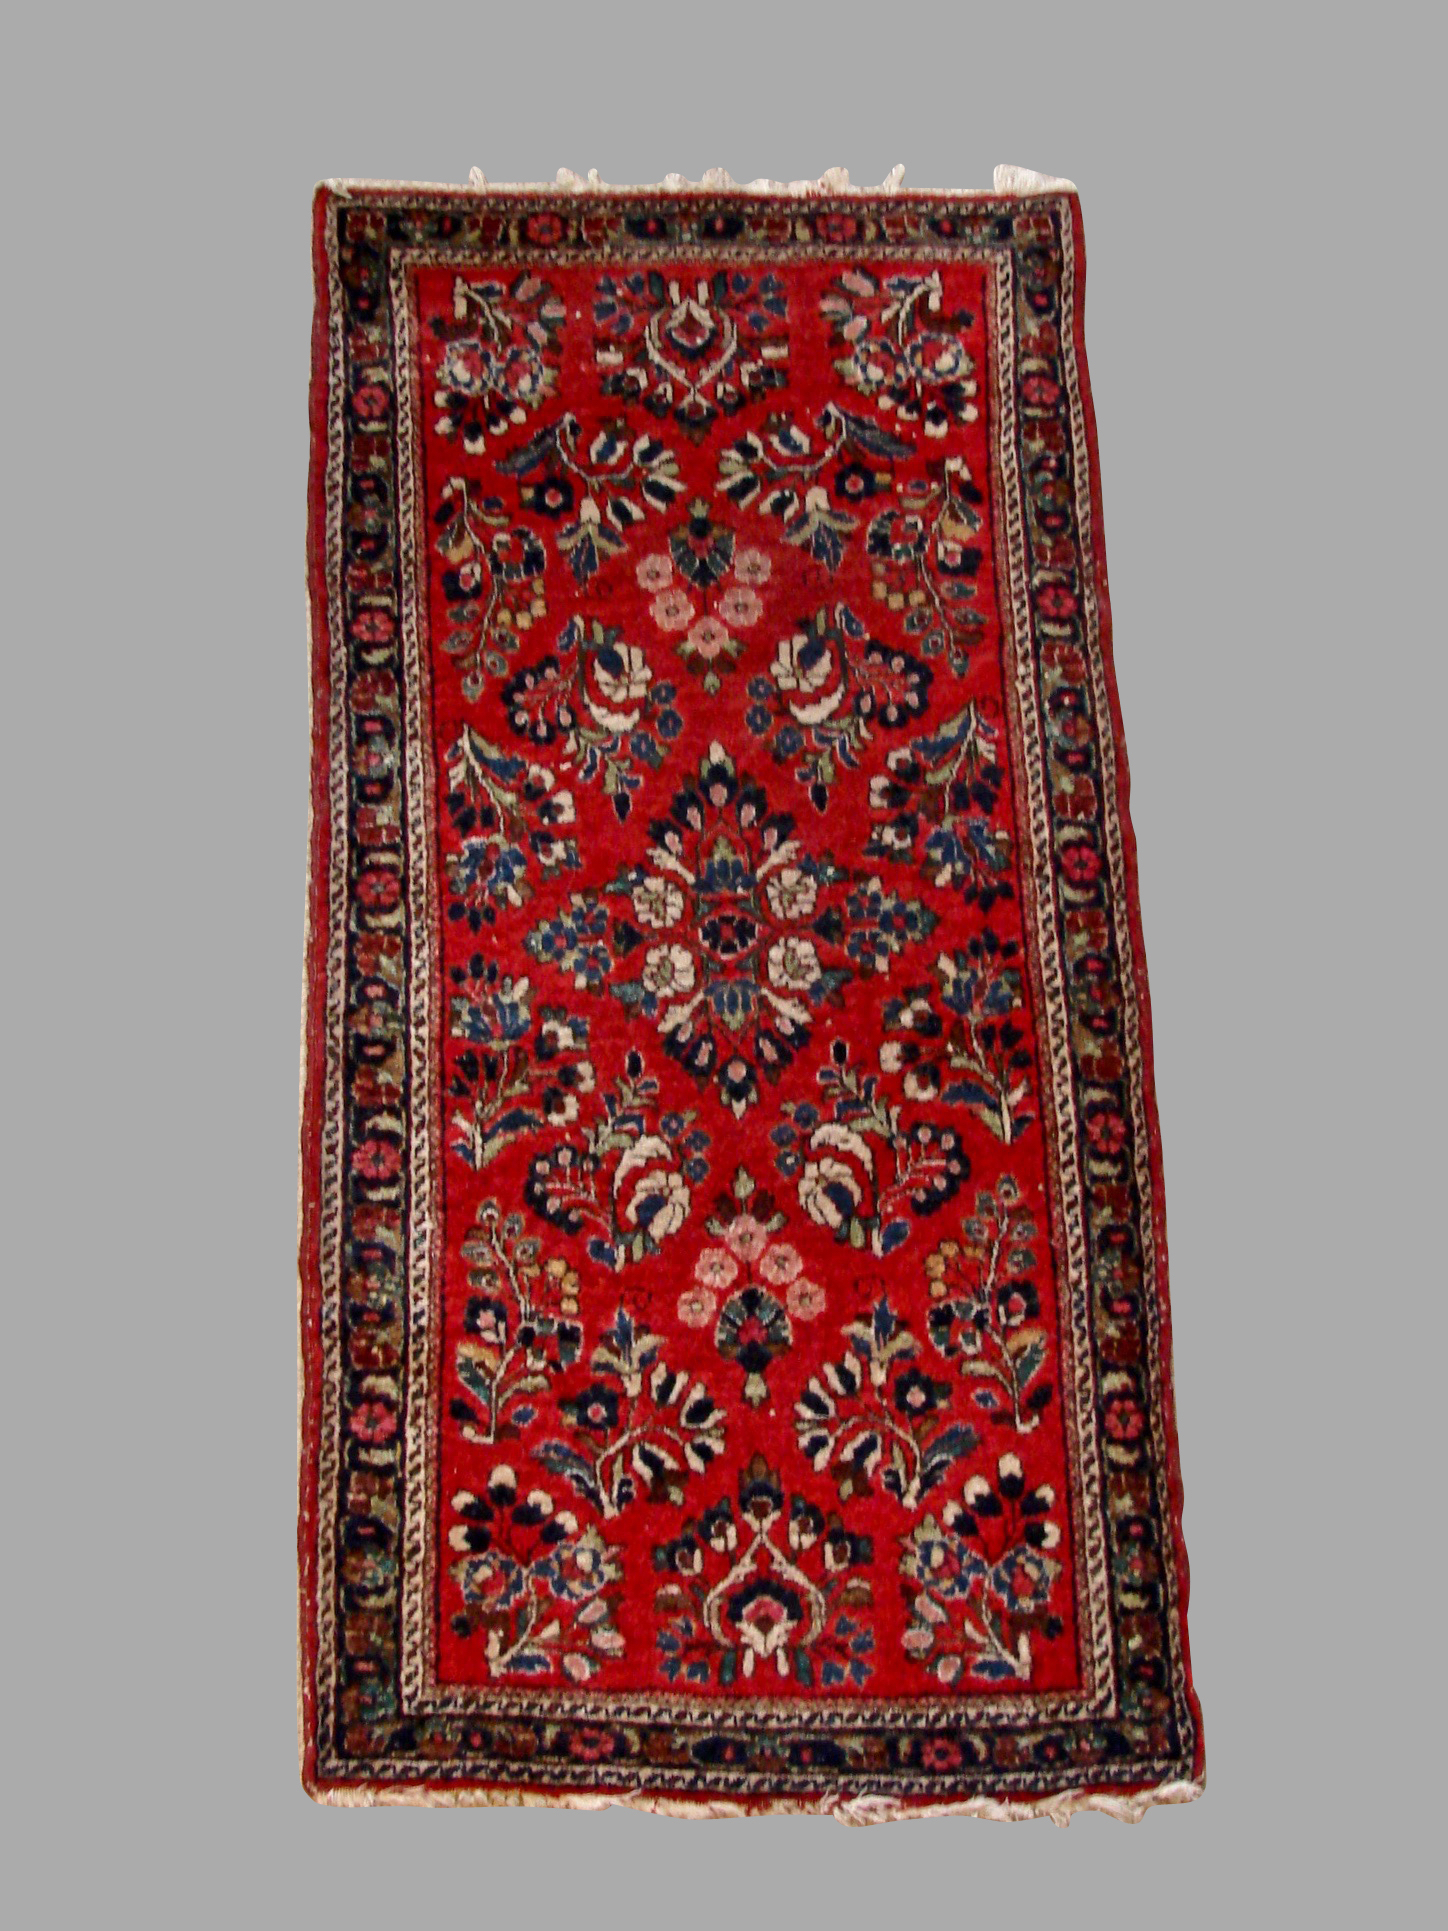 Sarouk Area Rug of Small Size with Floral Design | DANIEL STEIN Antiques San Francisco CA